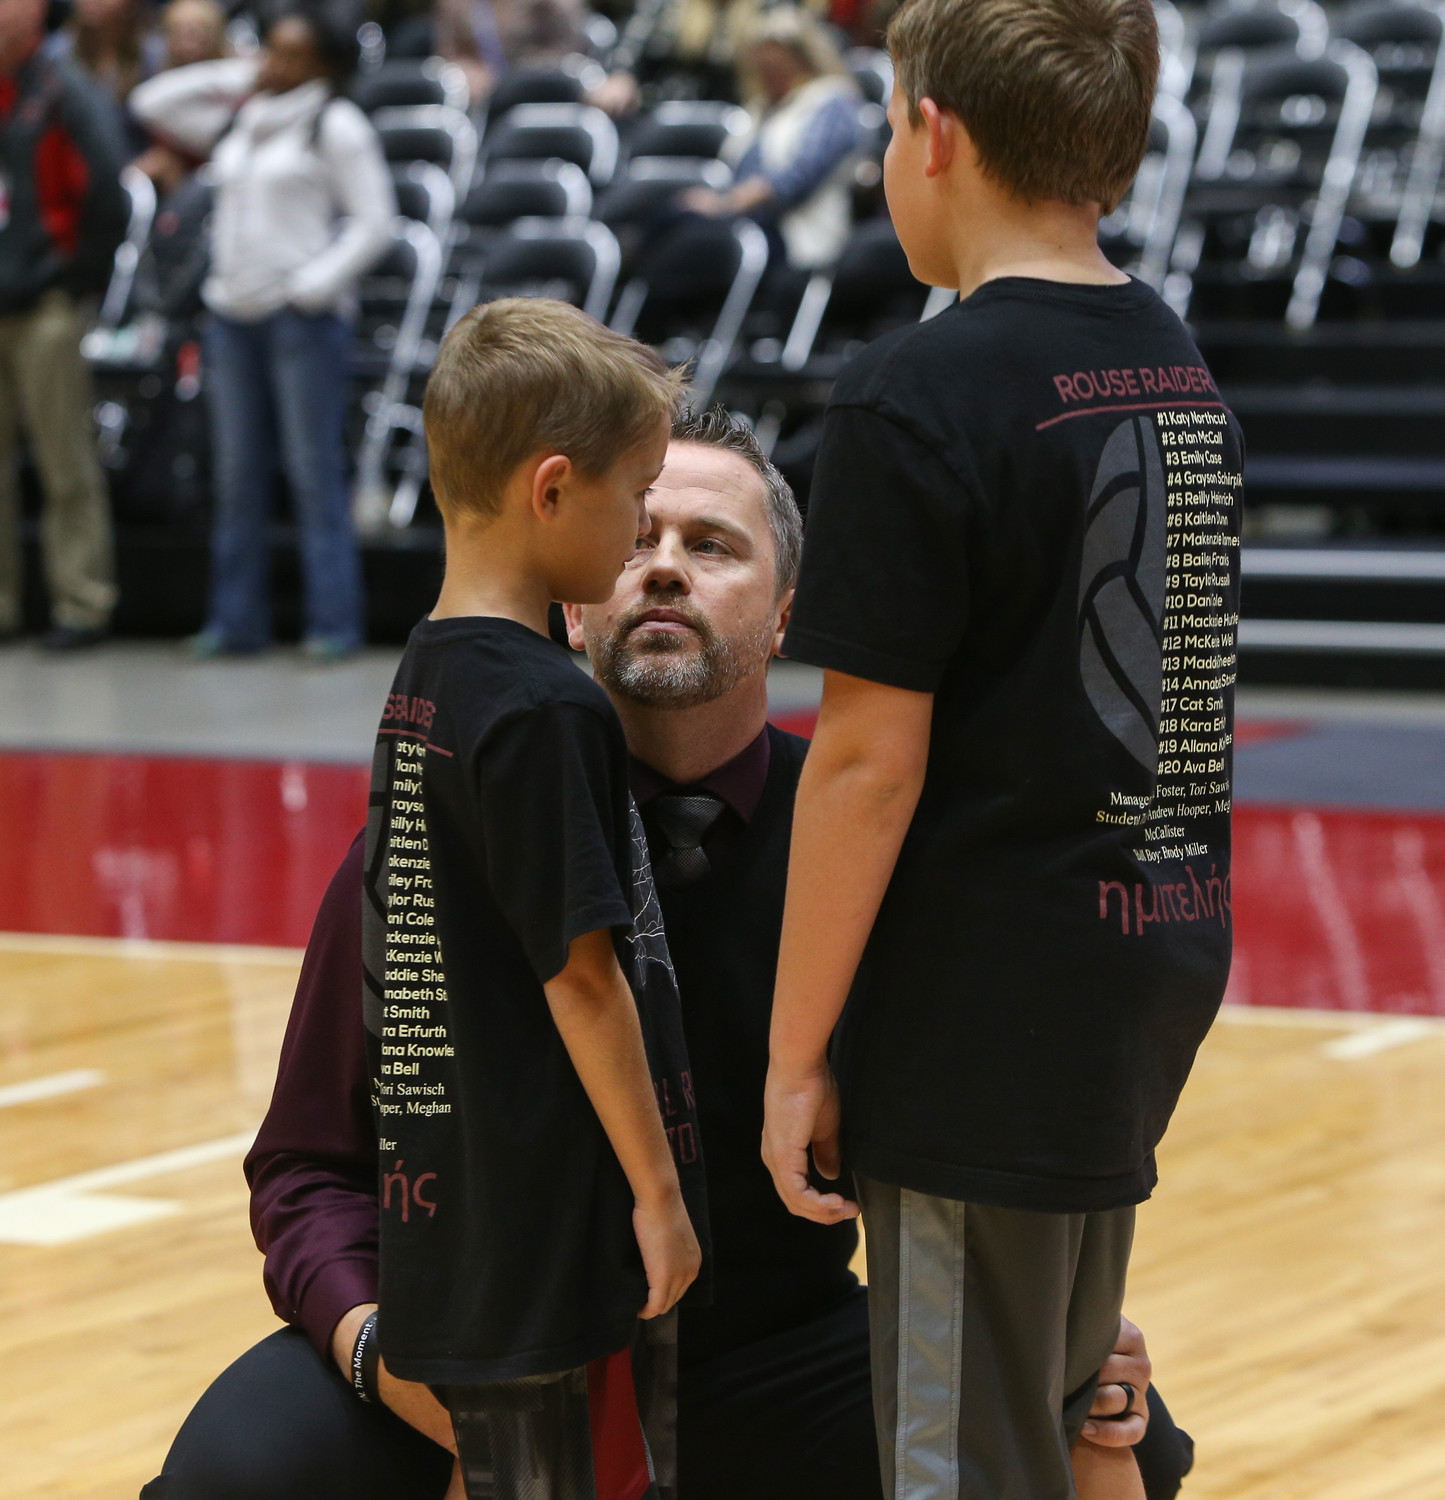 Rouse head coach Jacob Thompson talks to his children after the Raiders lost the Class 5A high school volleyball state final to Prosper High School at Curtis Culwell Center in Garland, Texas, on November 18, 2017. Prosper won the match in five sets, (25-18, 21-25, 18-25, 25, 23, 16-14) to win the 5A state championship.